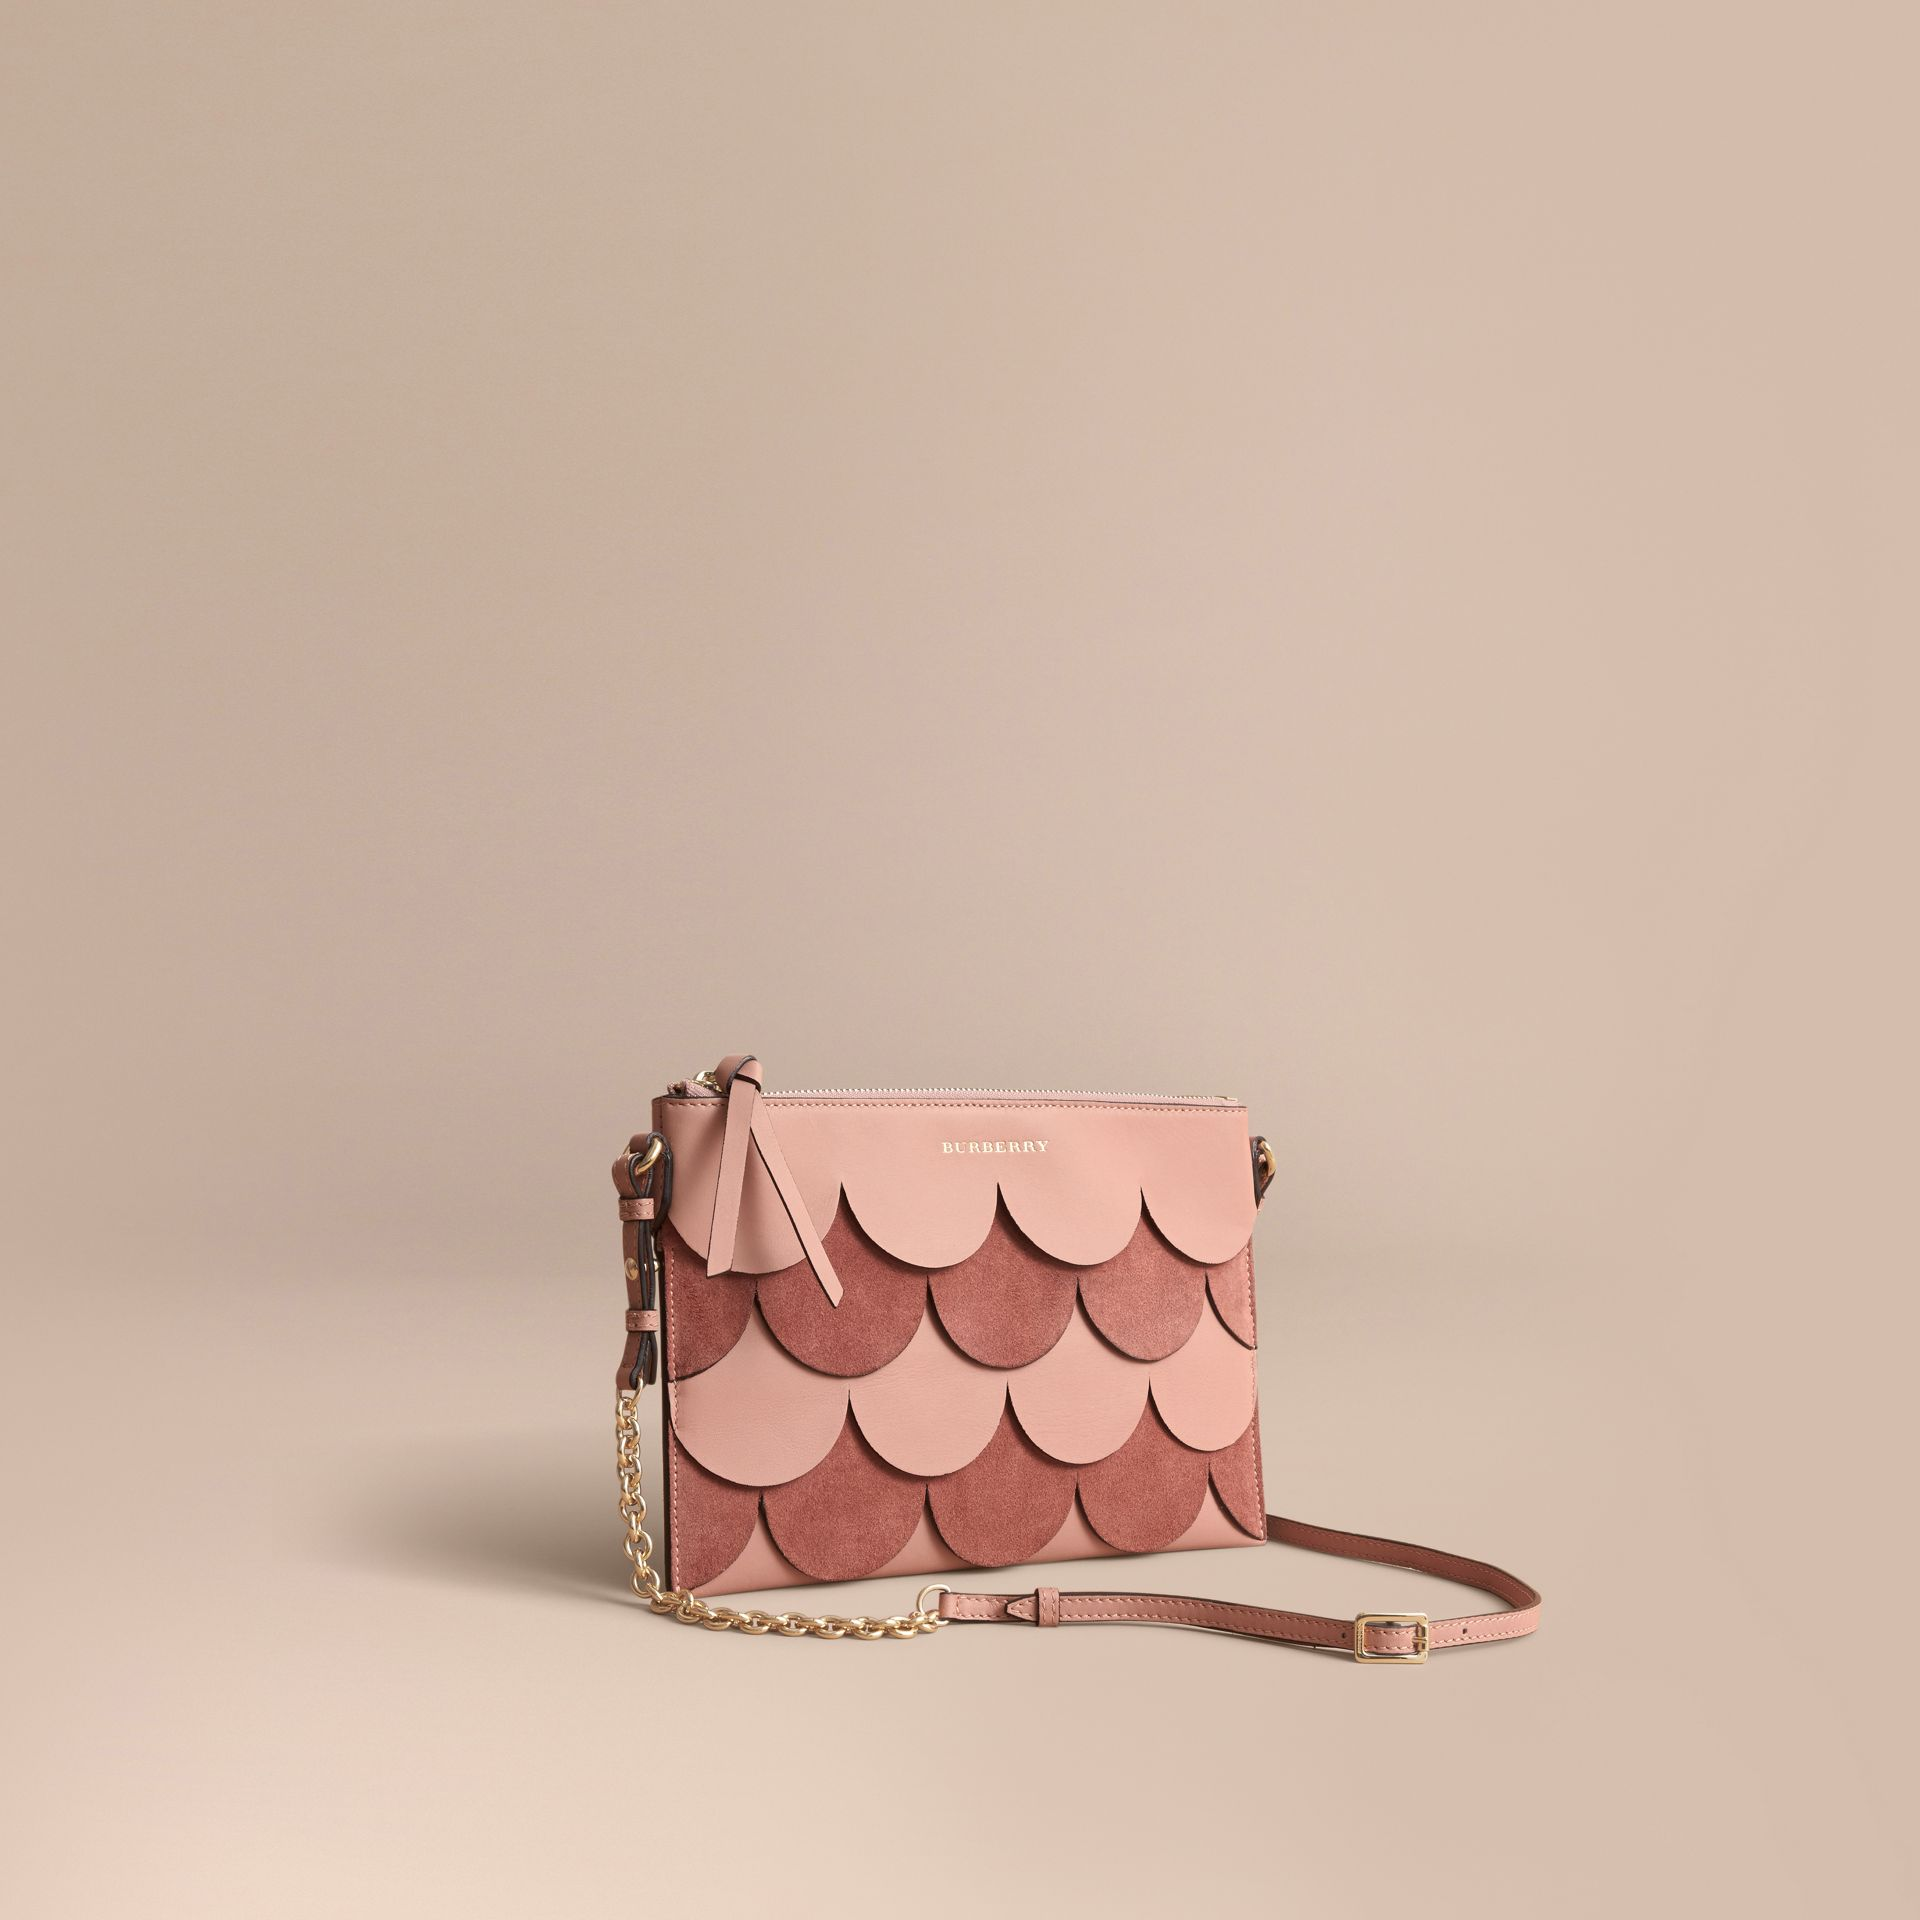 Two-tone Scalloped Leather and Suede Clutch Bag in Ash Rose - Women | Burberry United Kingdom - gallery image 1